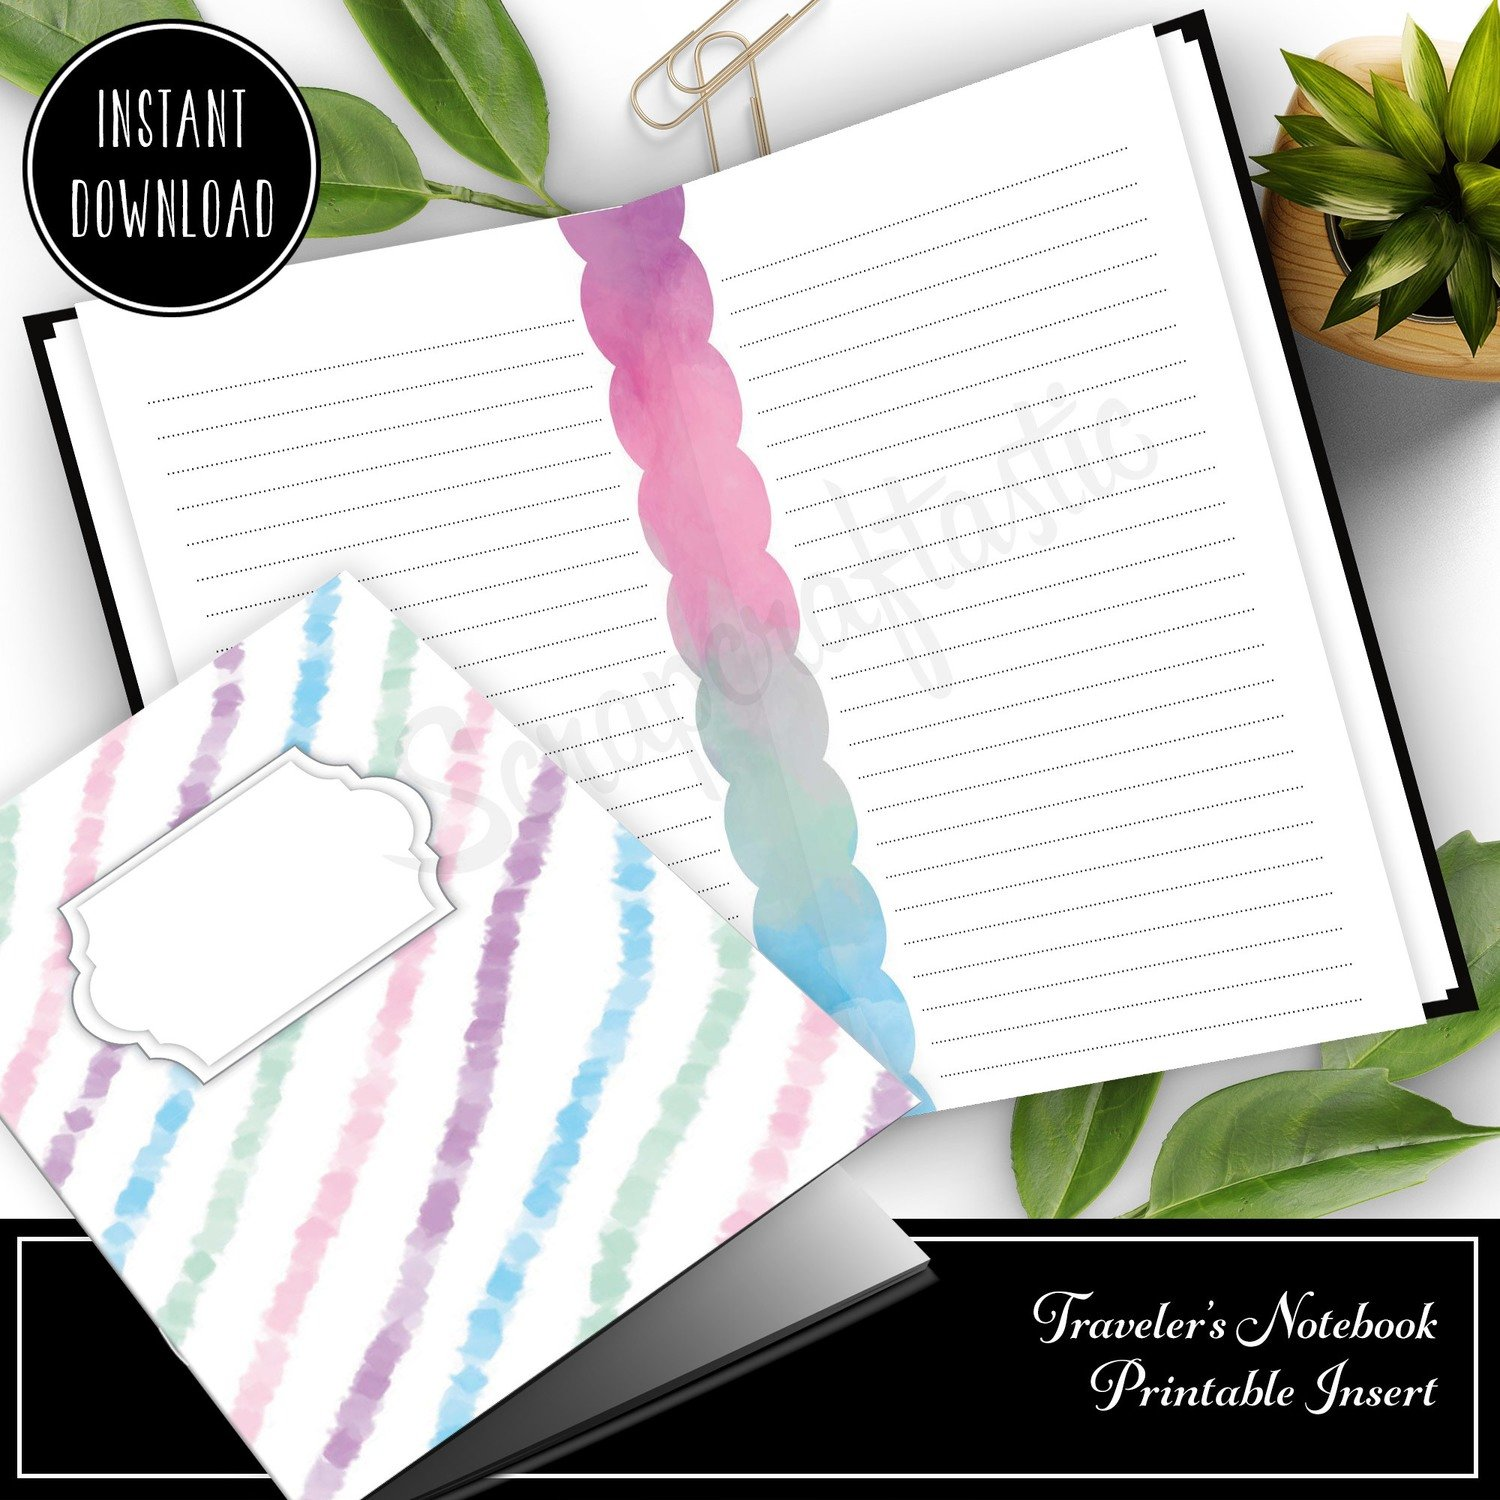 PASSPORT TN - Unicorn Magic Lined Note Paper Traveler's Notebook Printable Insert